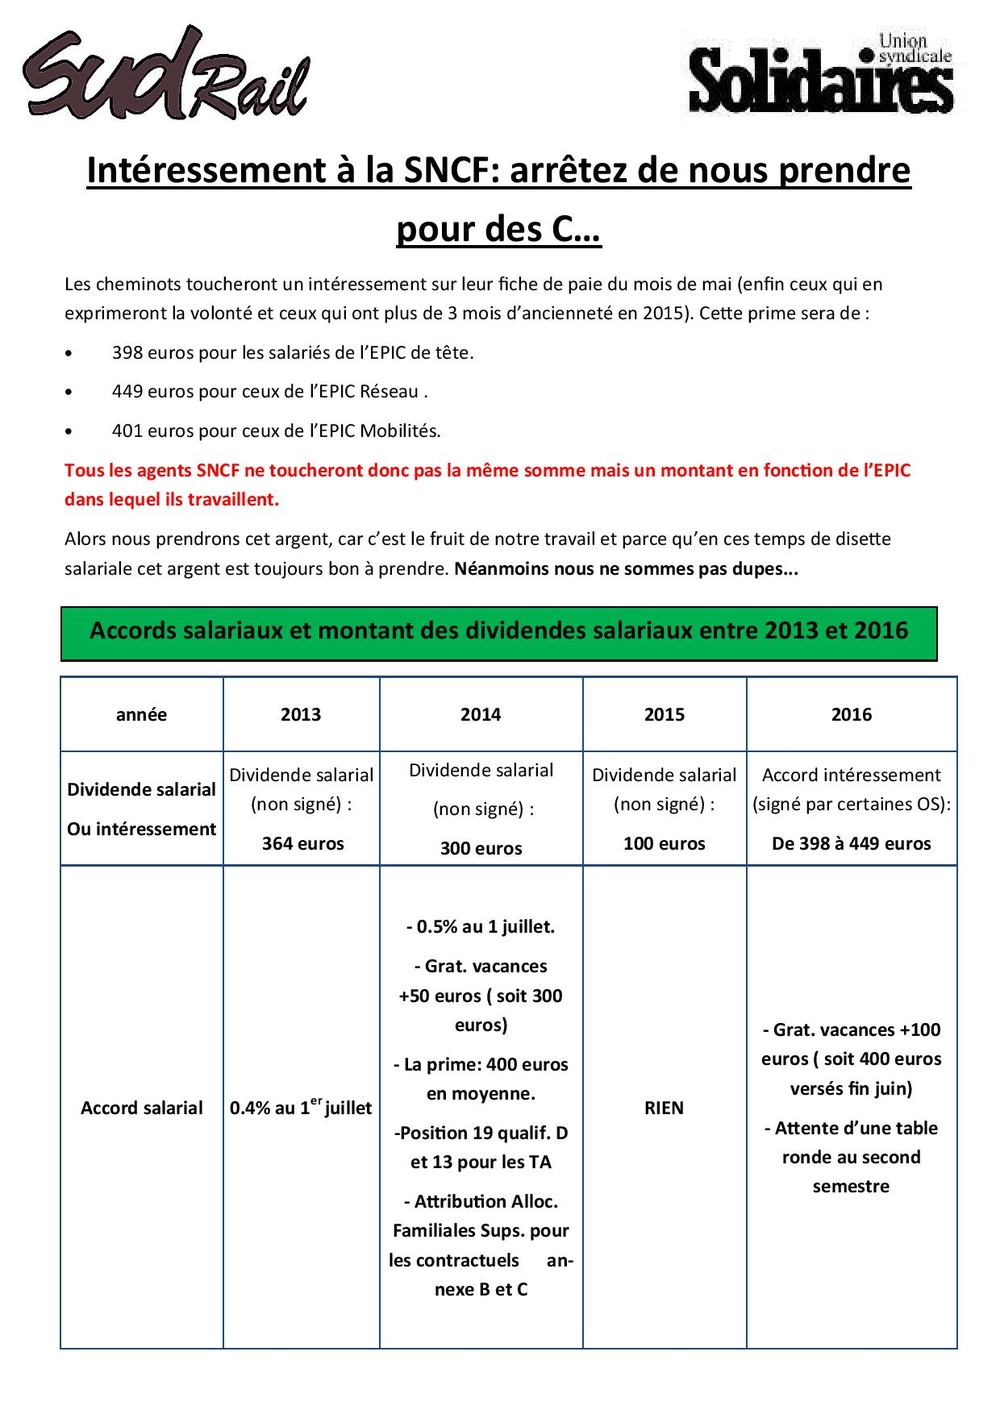 tract interessement-page-001